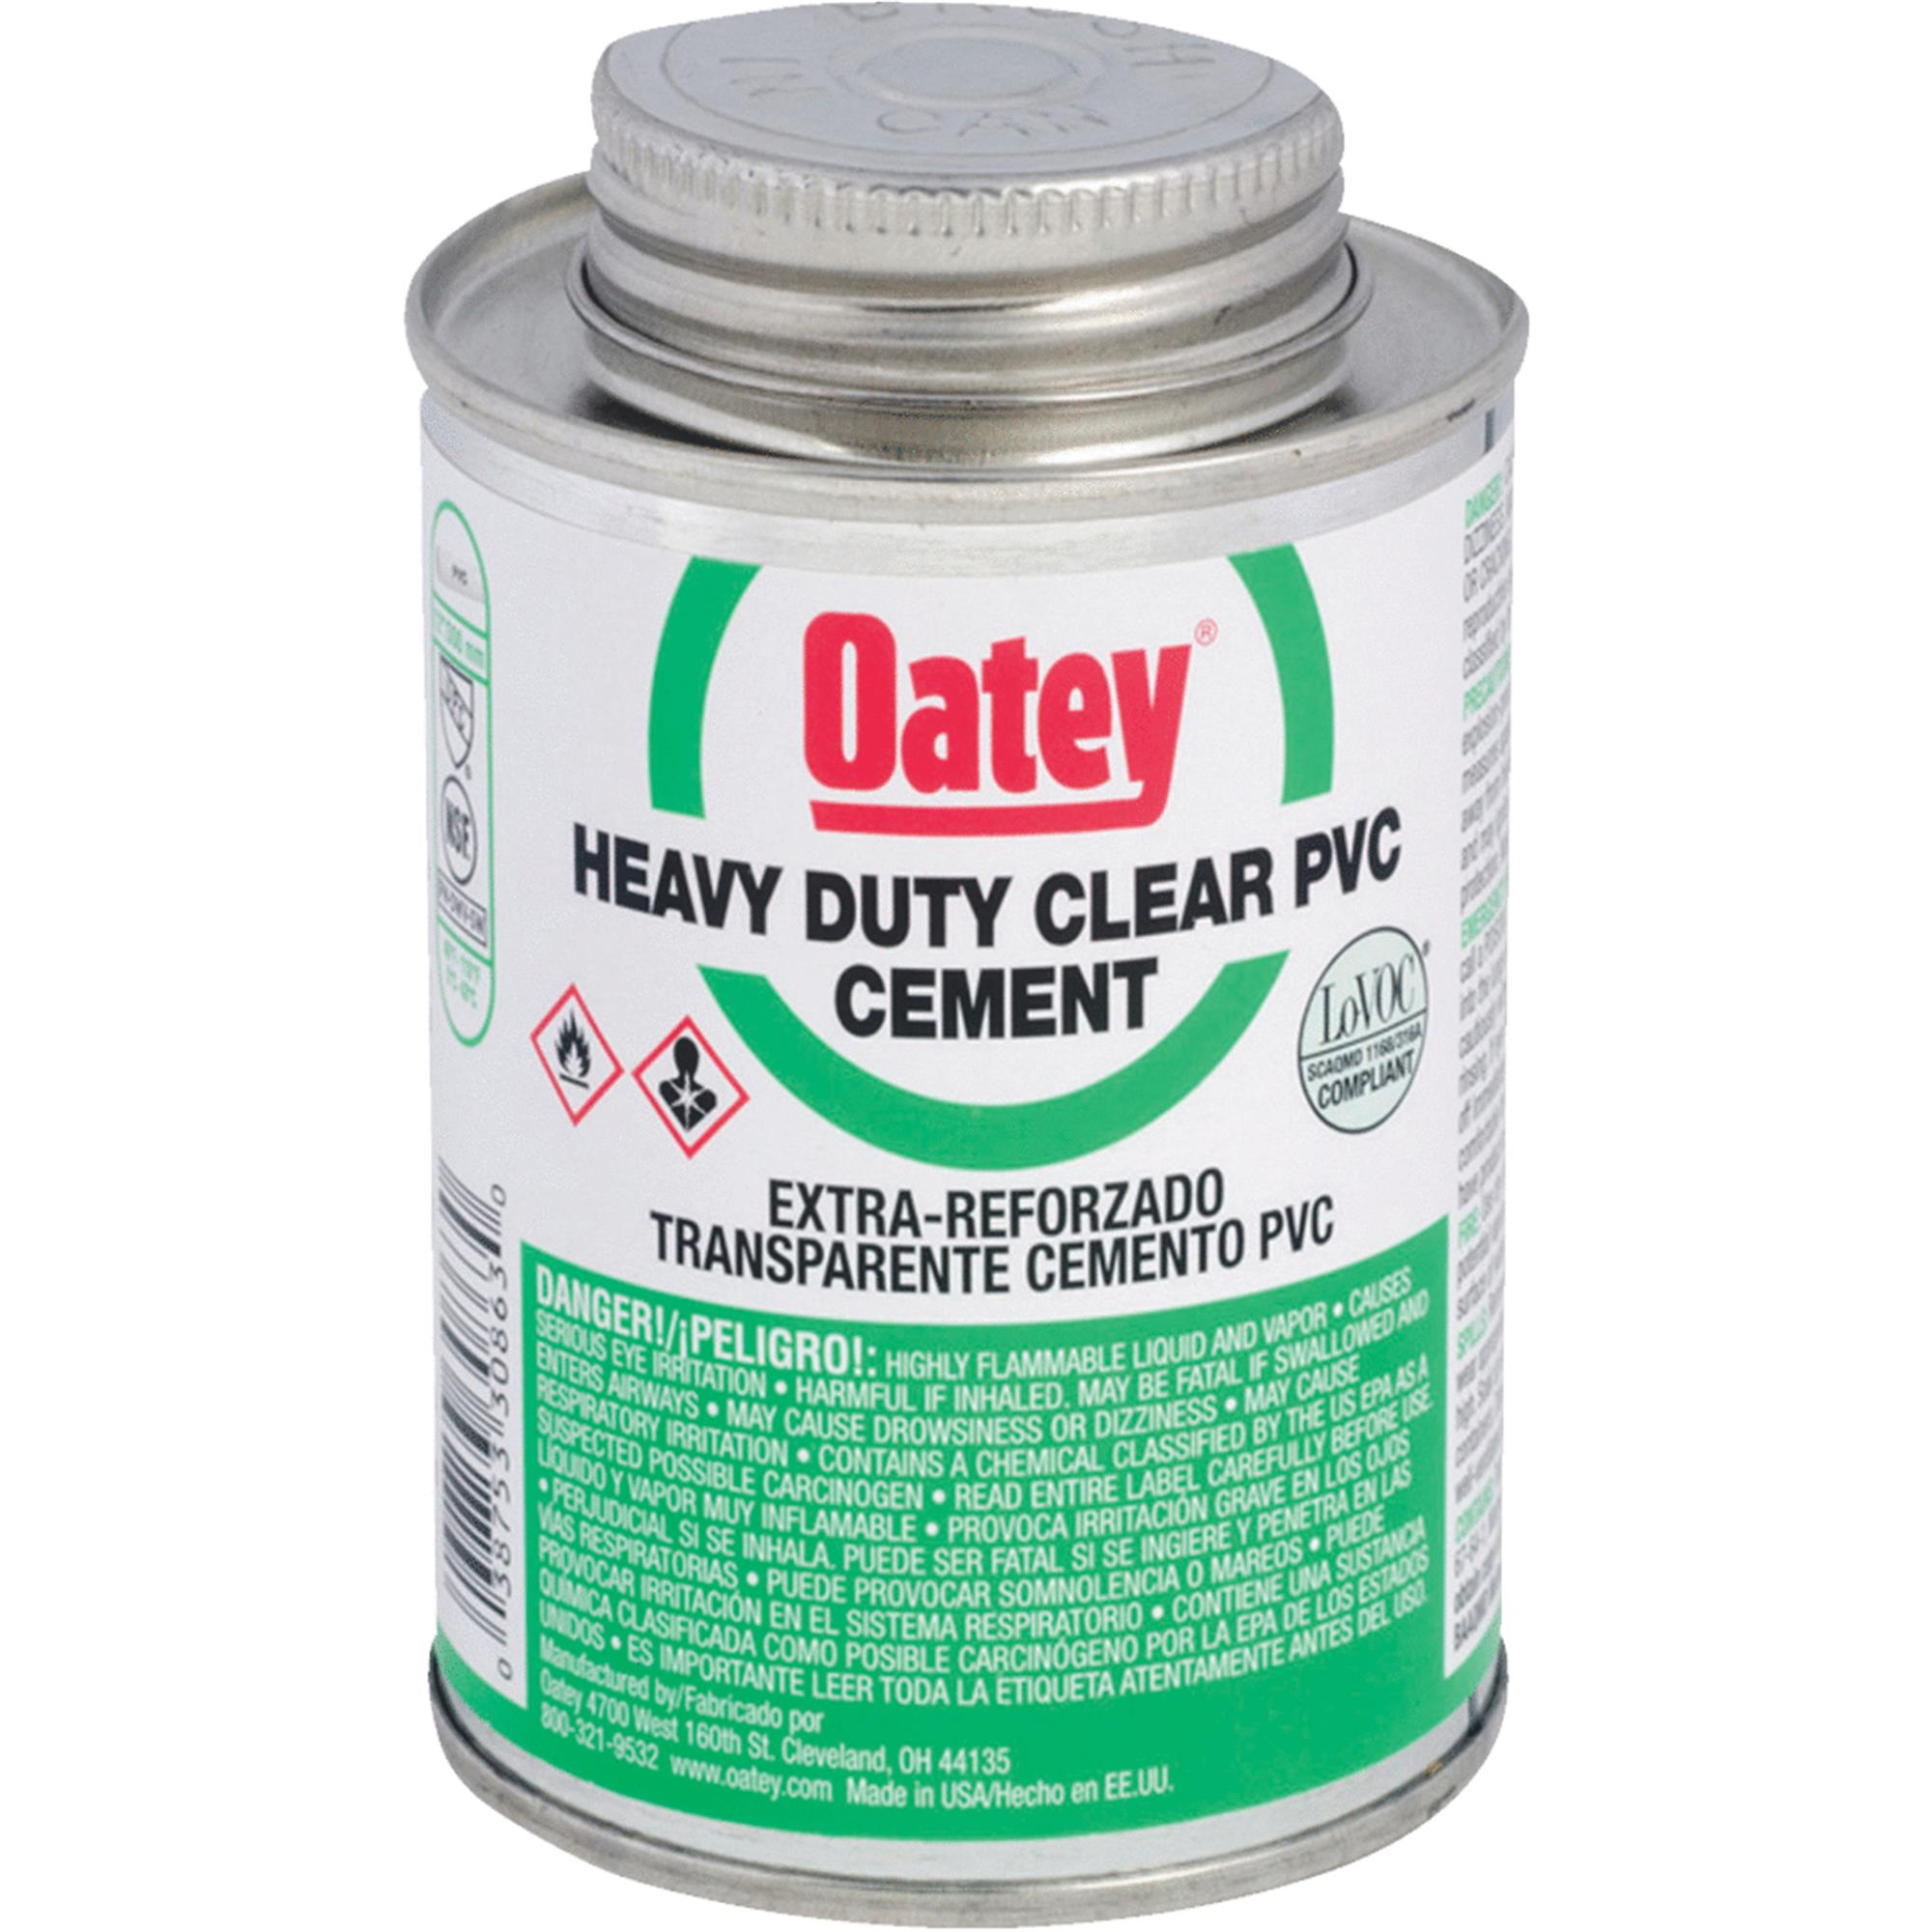 Oatey 1/4pt Heavy Duty Pvc Cement 30850